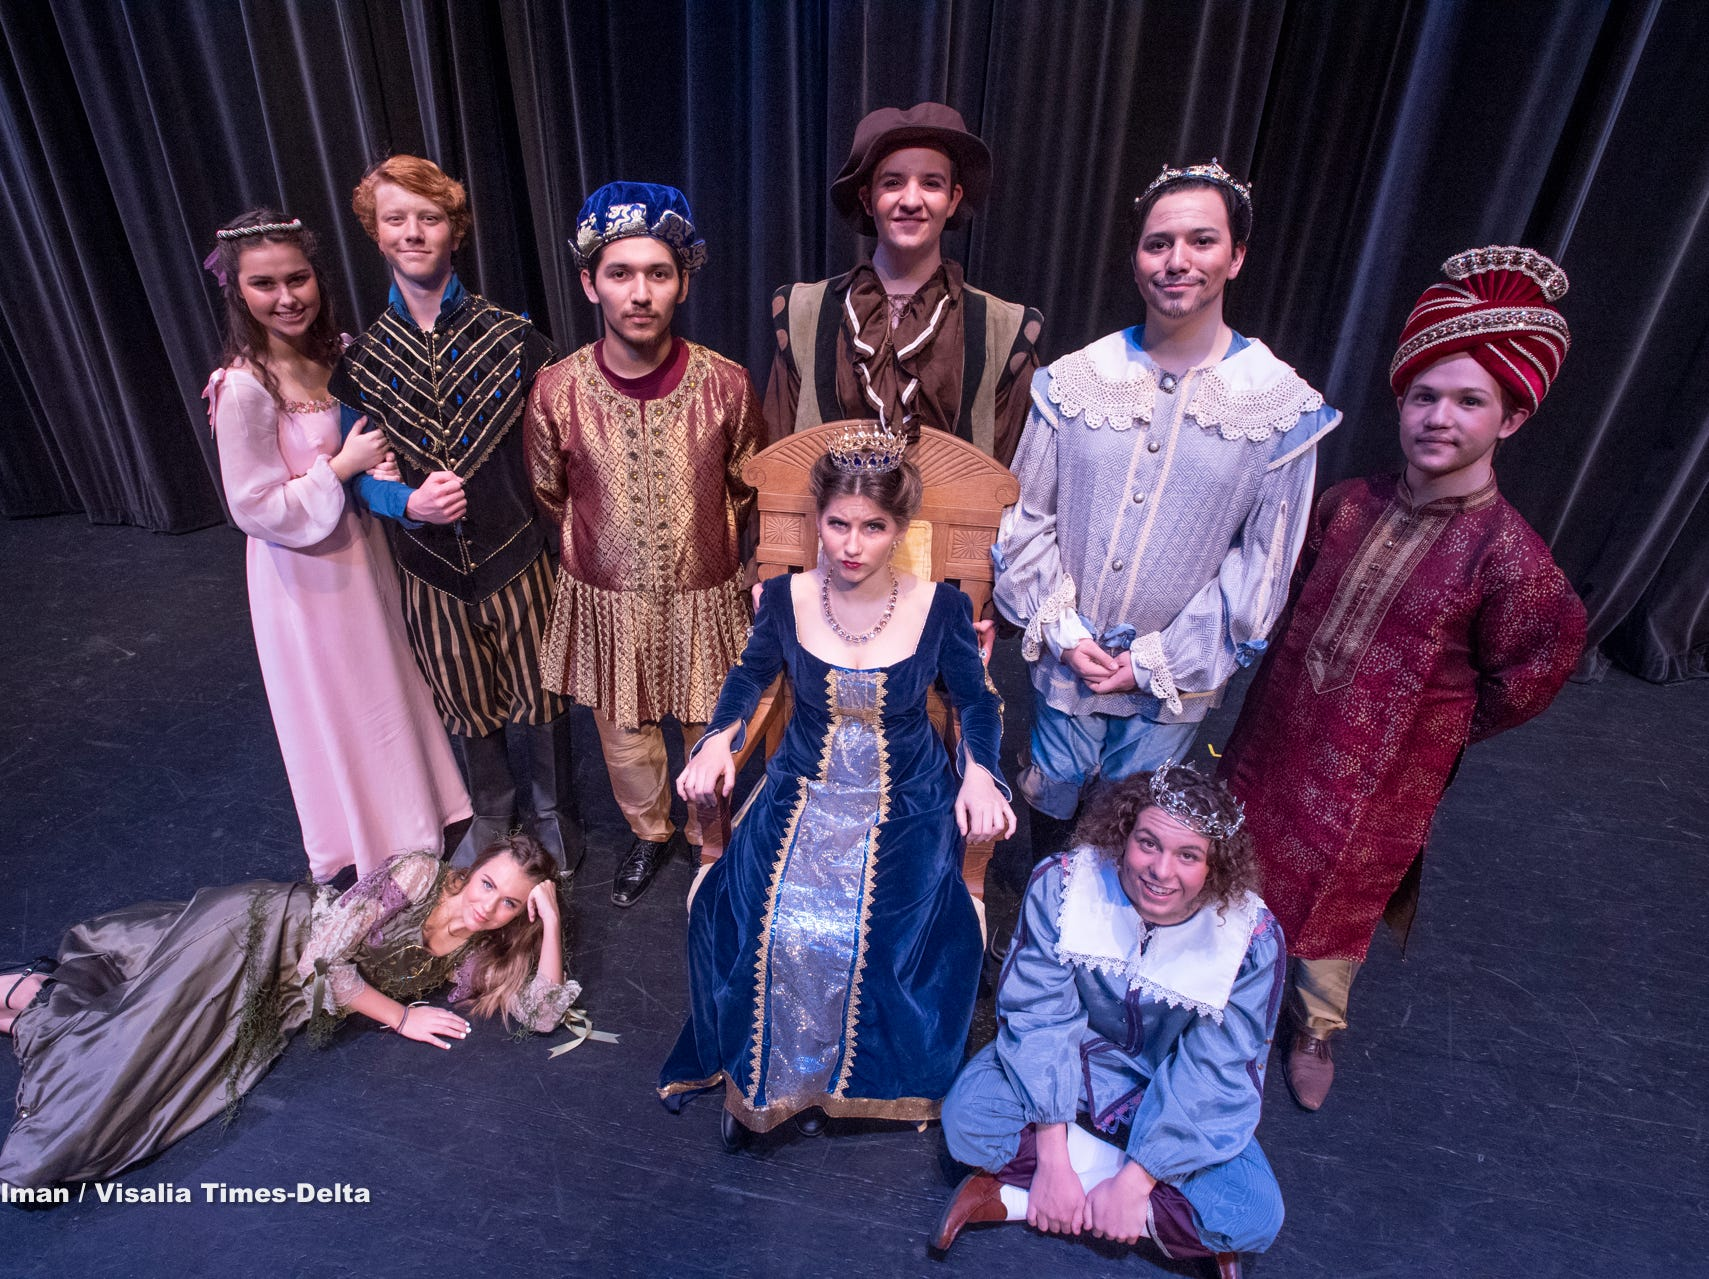 Redwood students rehearse for their production of Once Upon a Mattress in the L.J. Williams Theater on Wednesday, February 13, 2019.